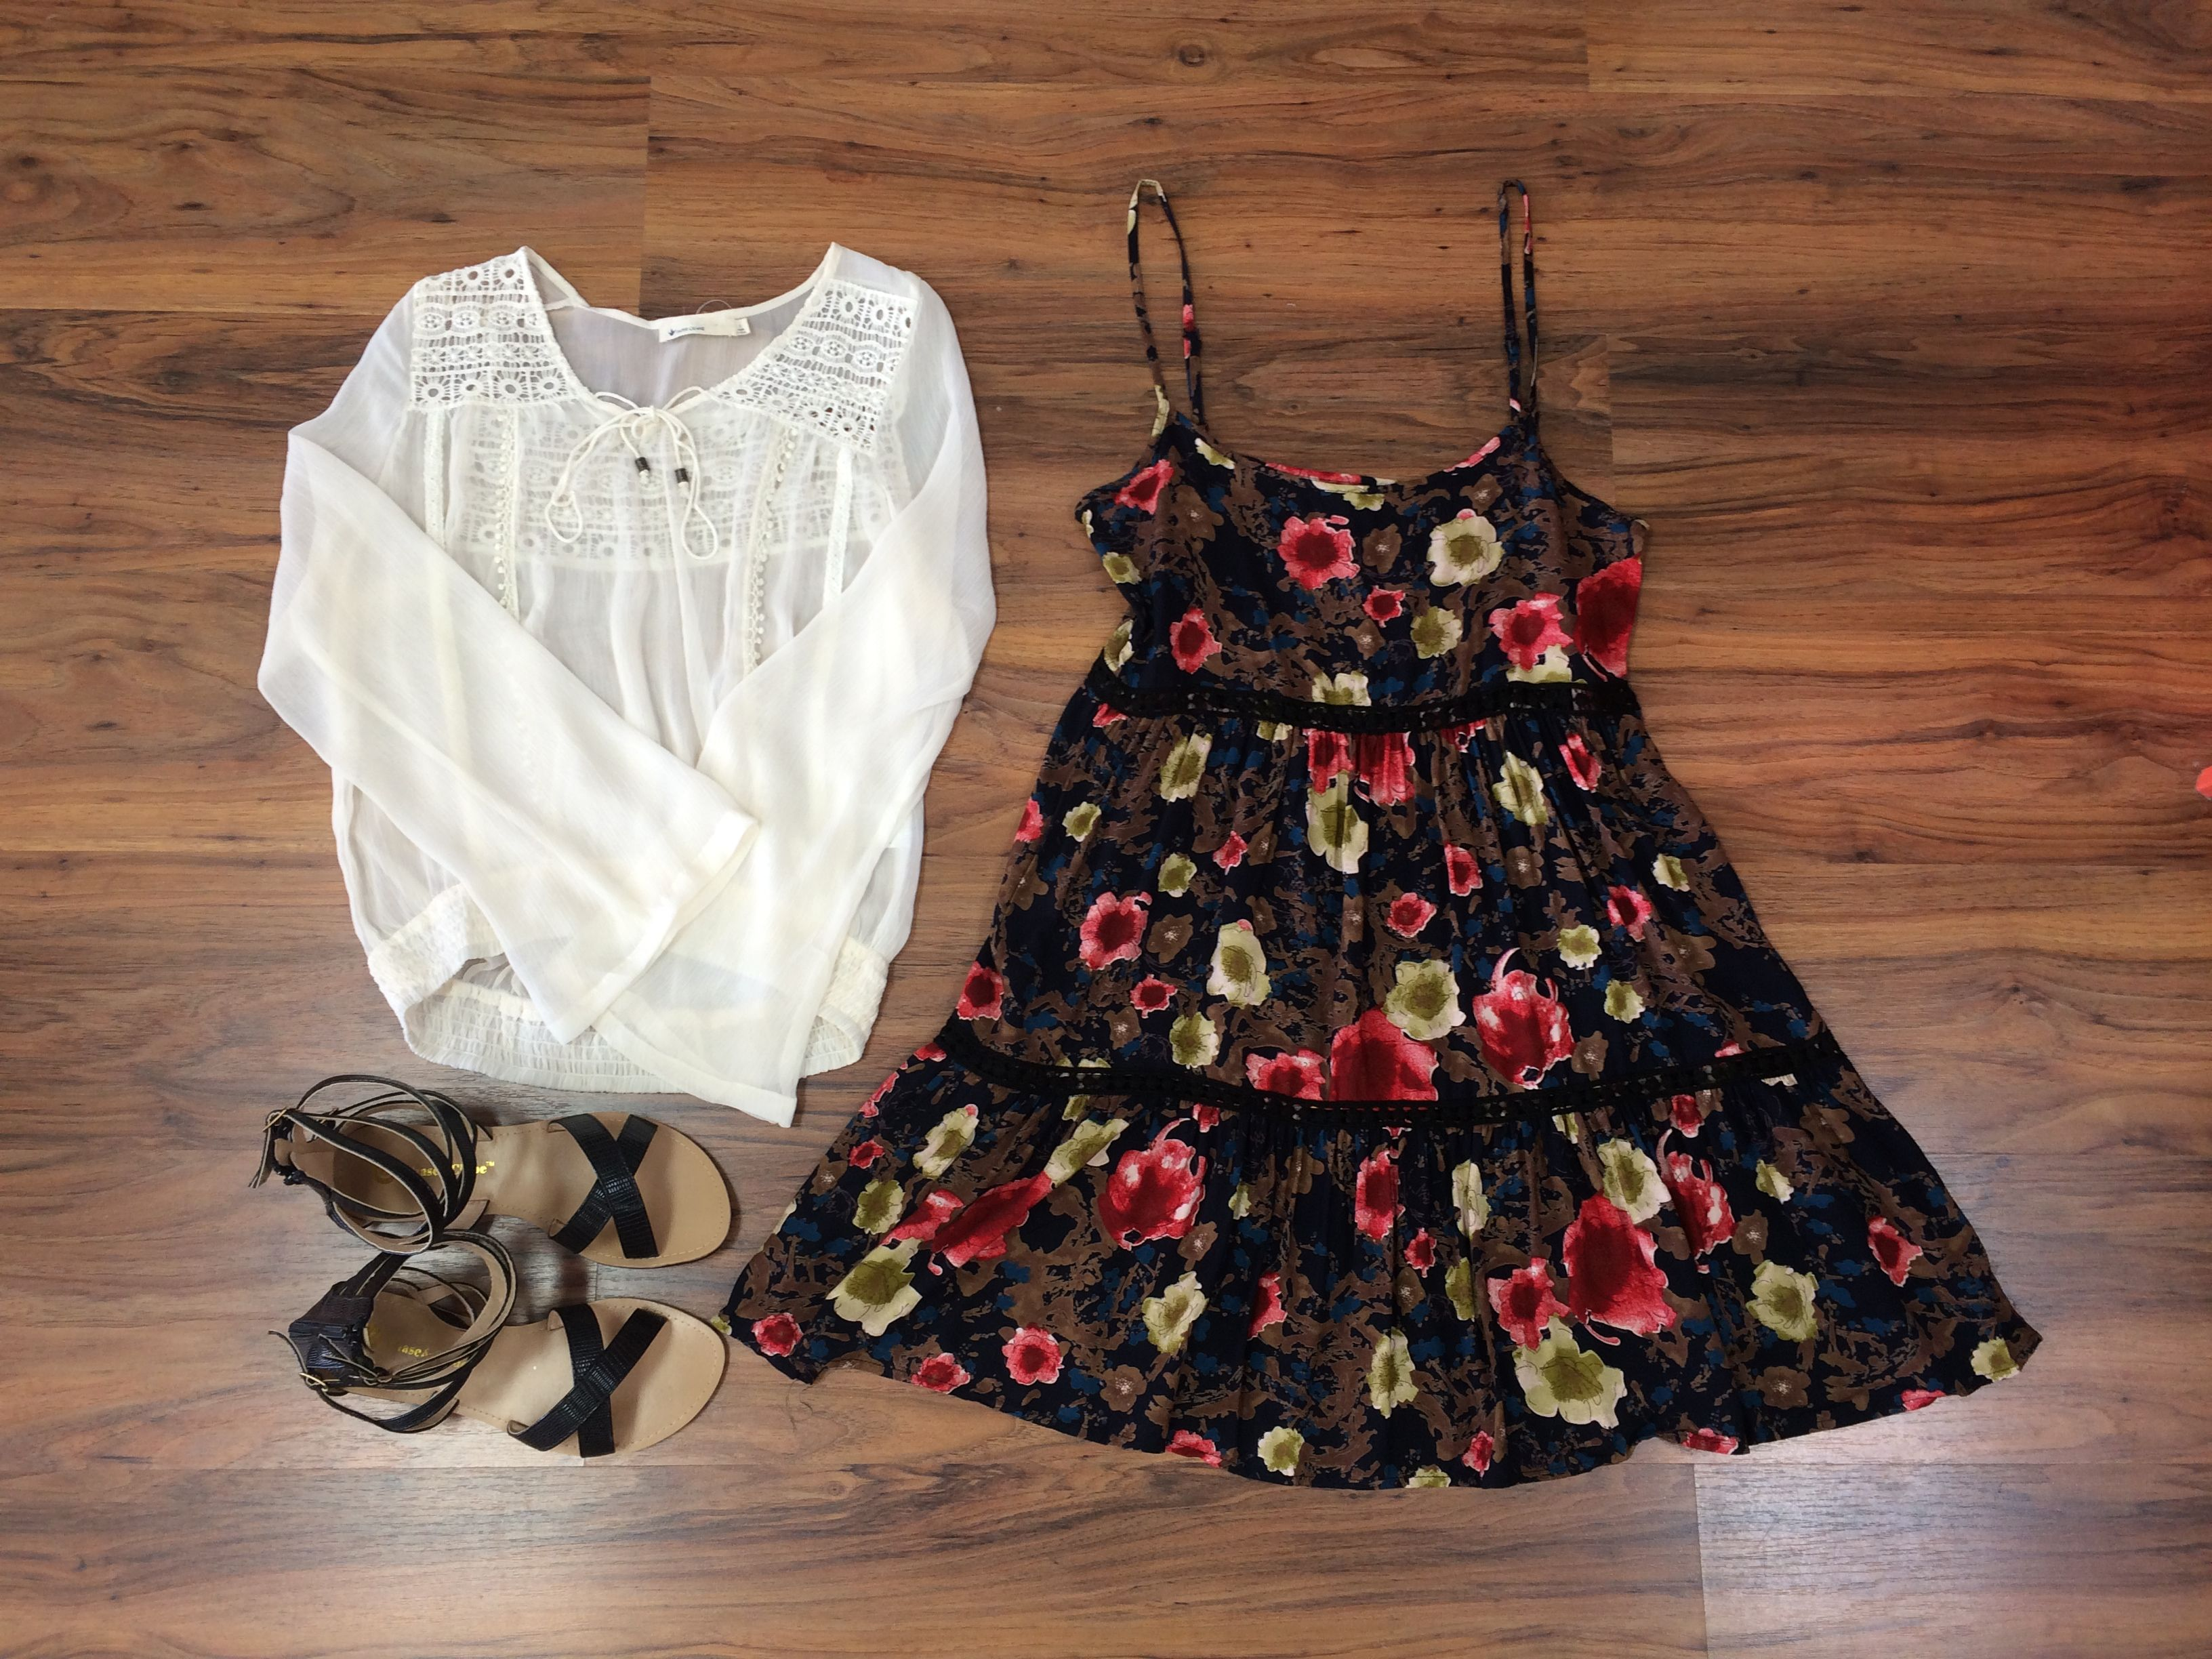 *NEW ARRIVALS* This floral dress with lace detail is STUNNING! If you like layering, you can use this ivory crotchet top! Tons of new items just hit the floor today so be sure to come check them out! #StyledByPaula